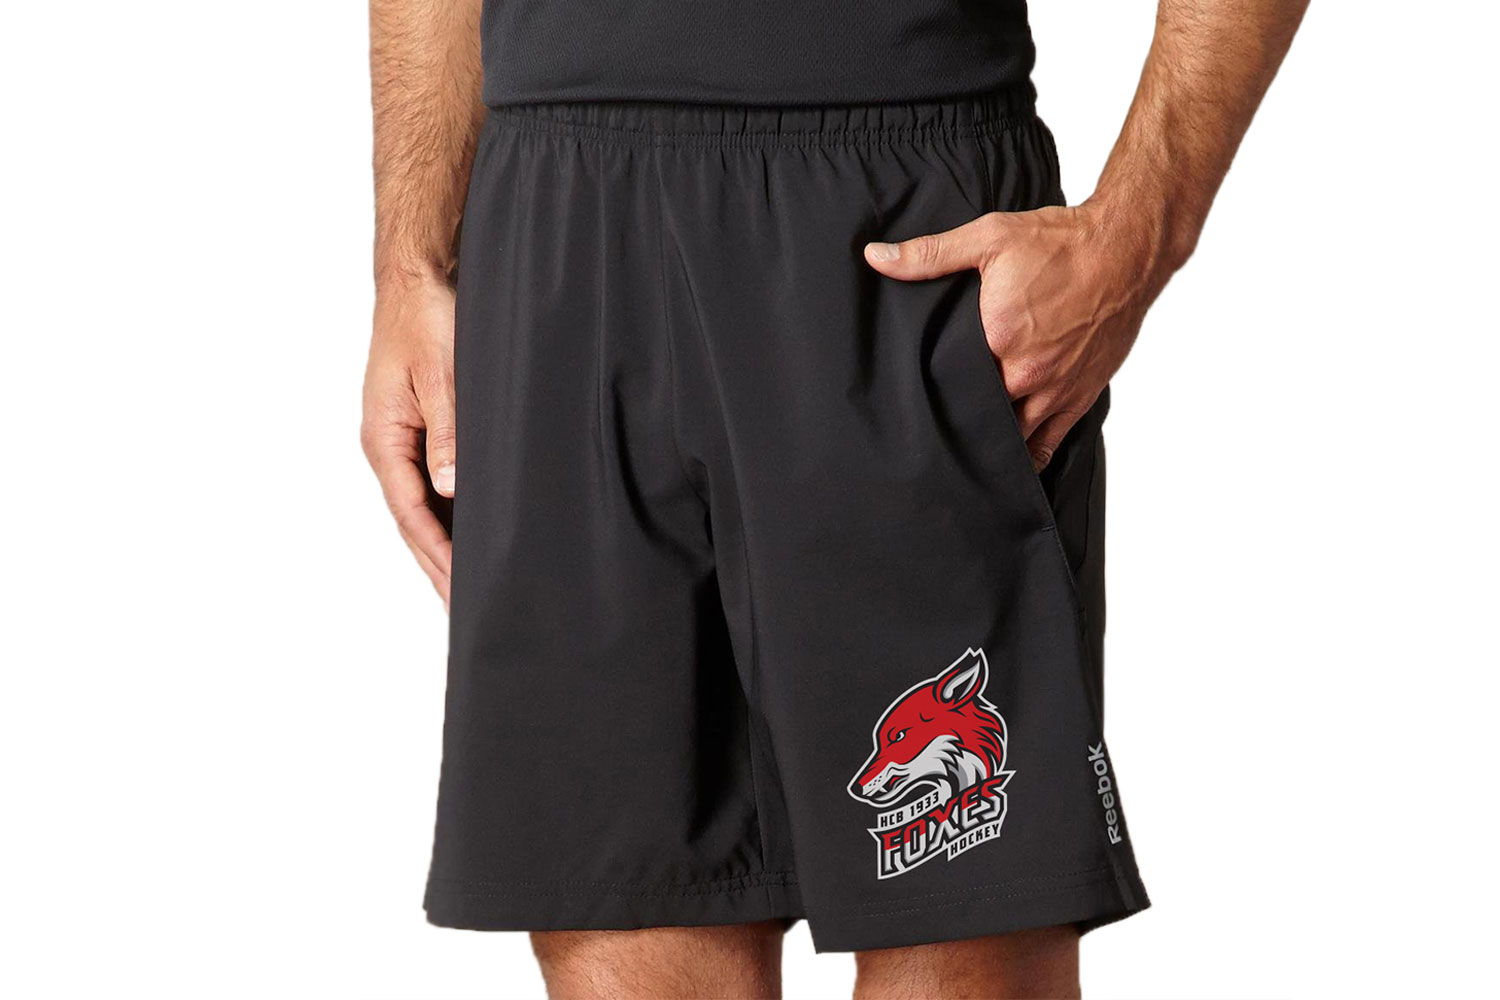 HCB_Foxes_Shorts.jpg